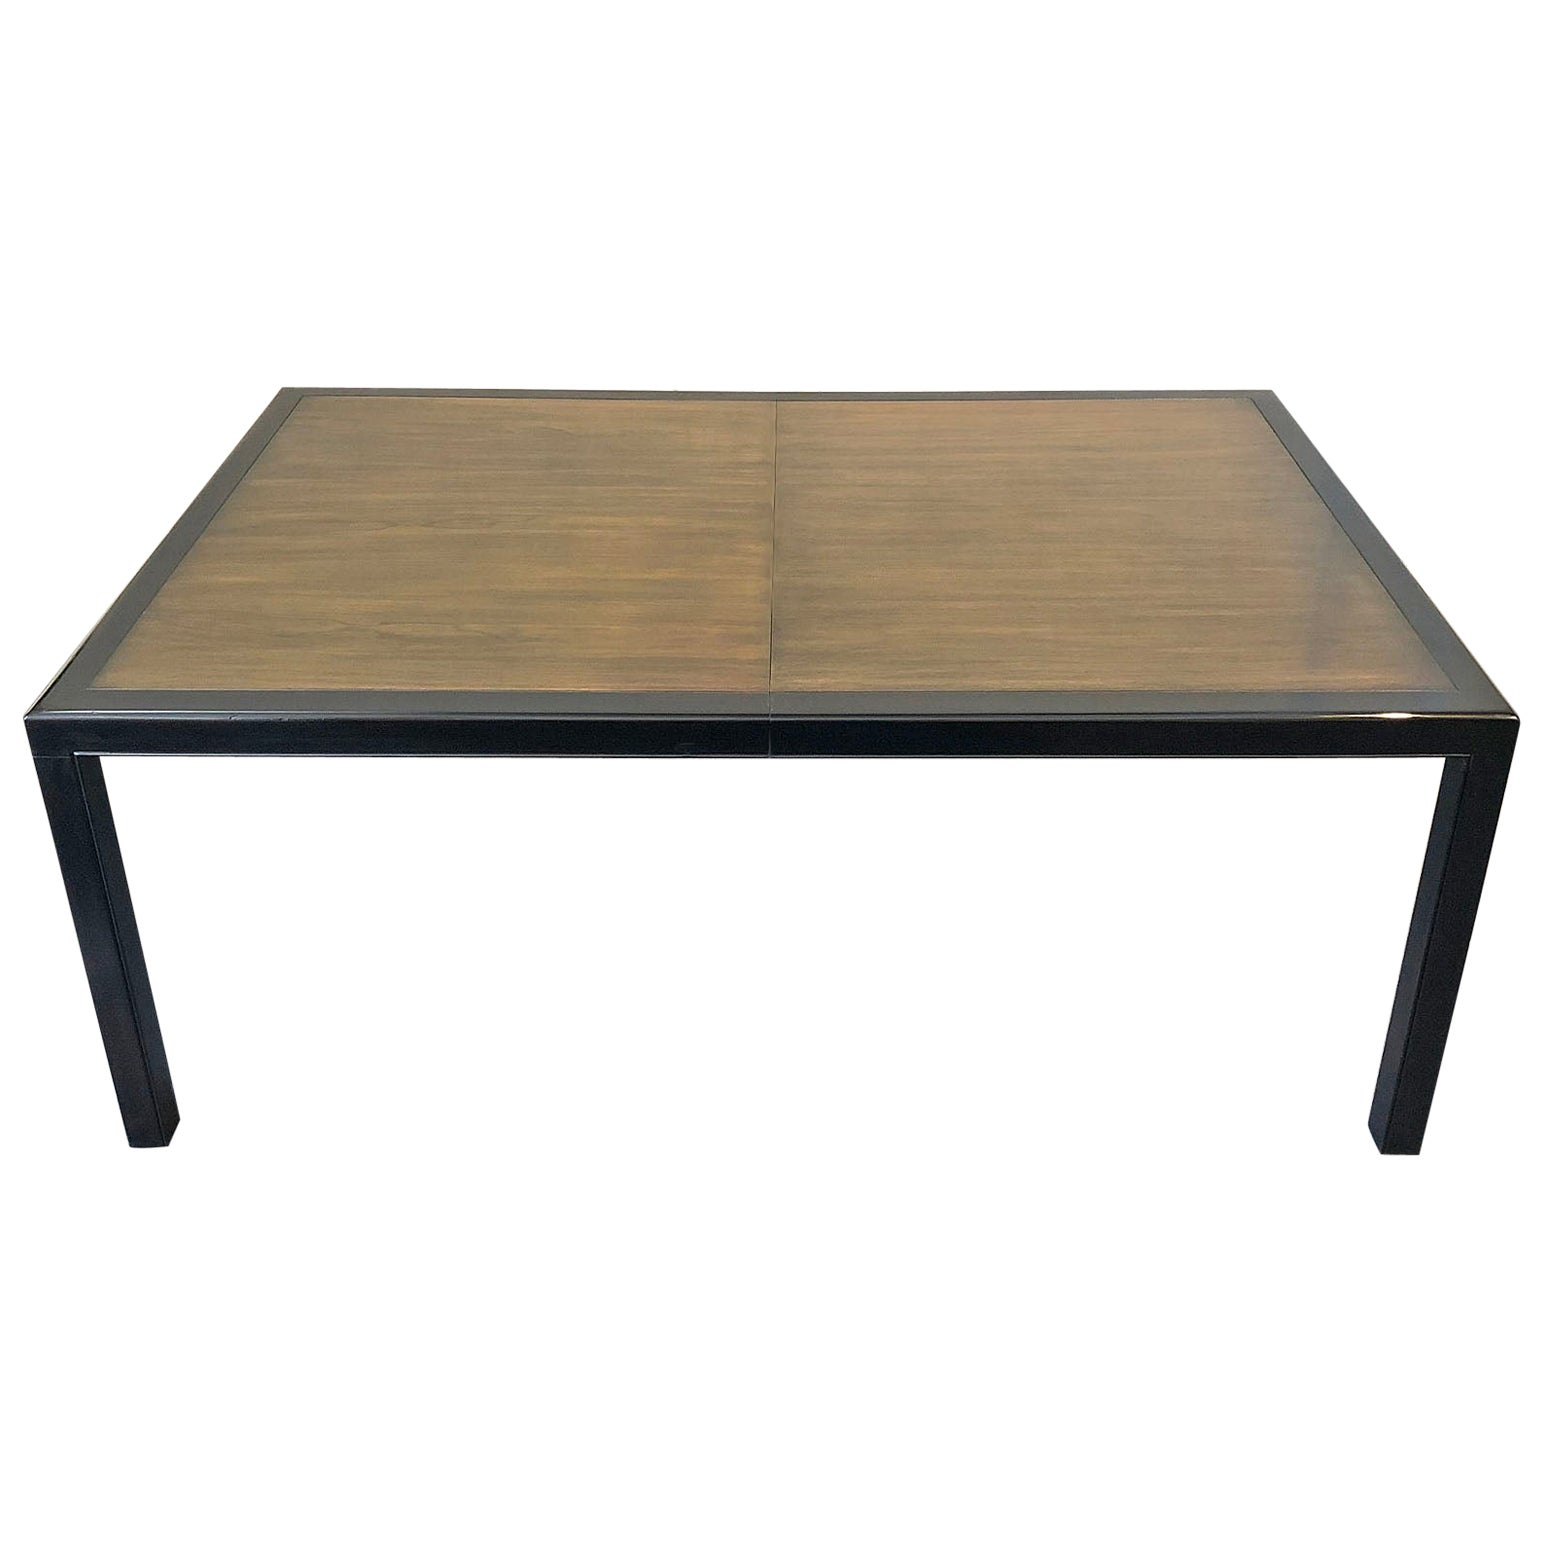 Dining Table by Edward Wormley for Dunbar